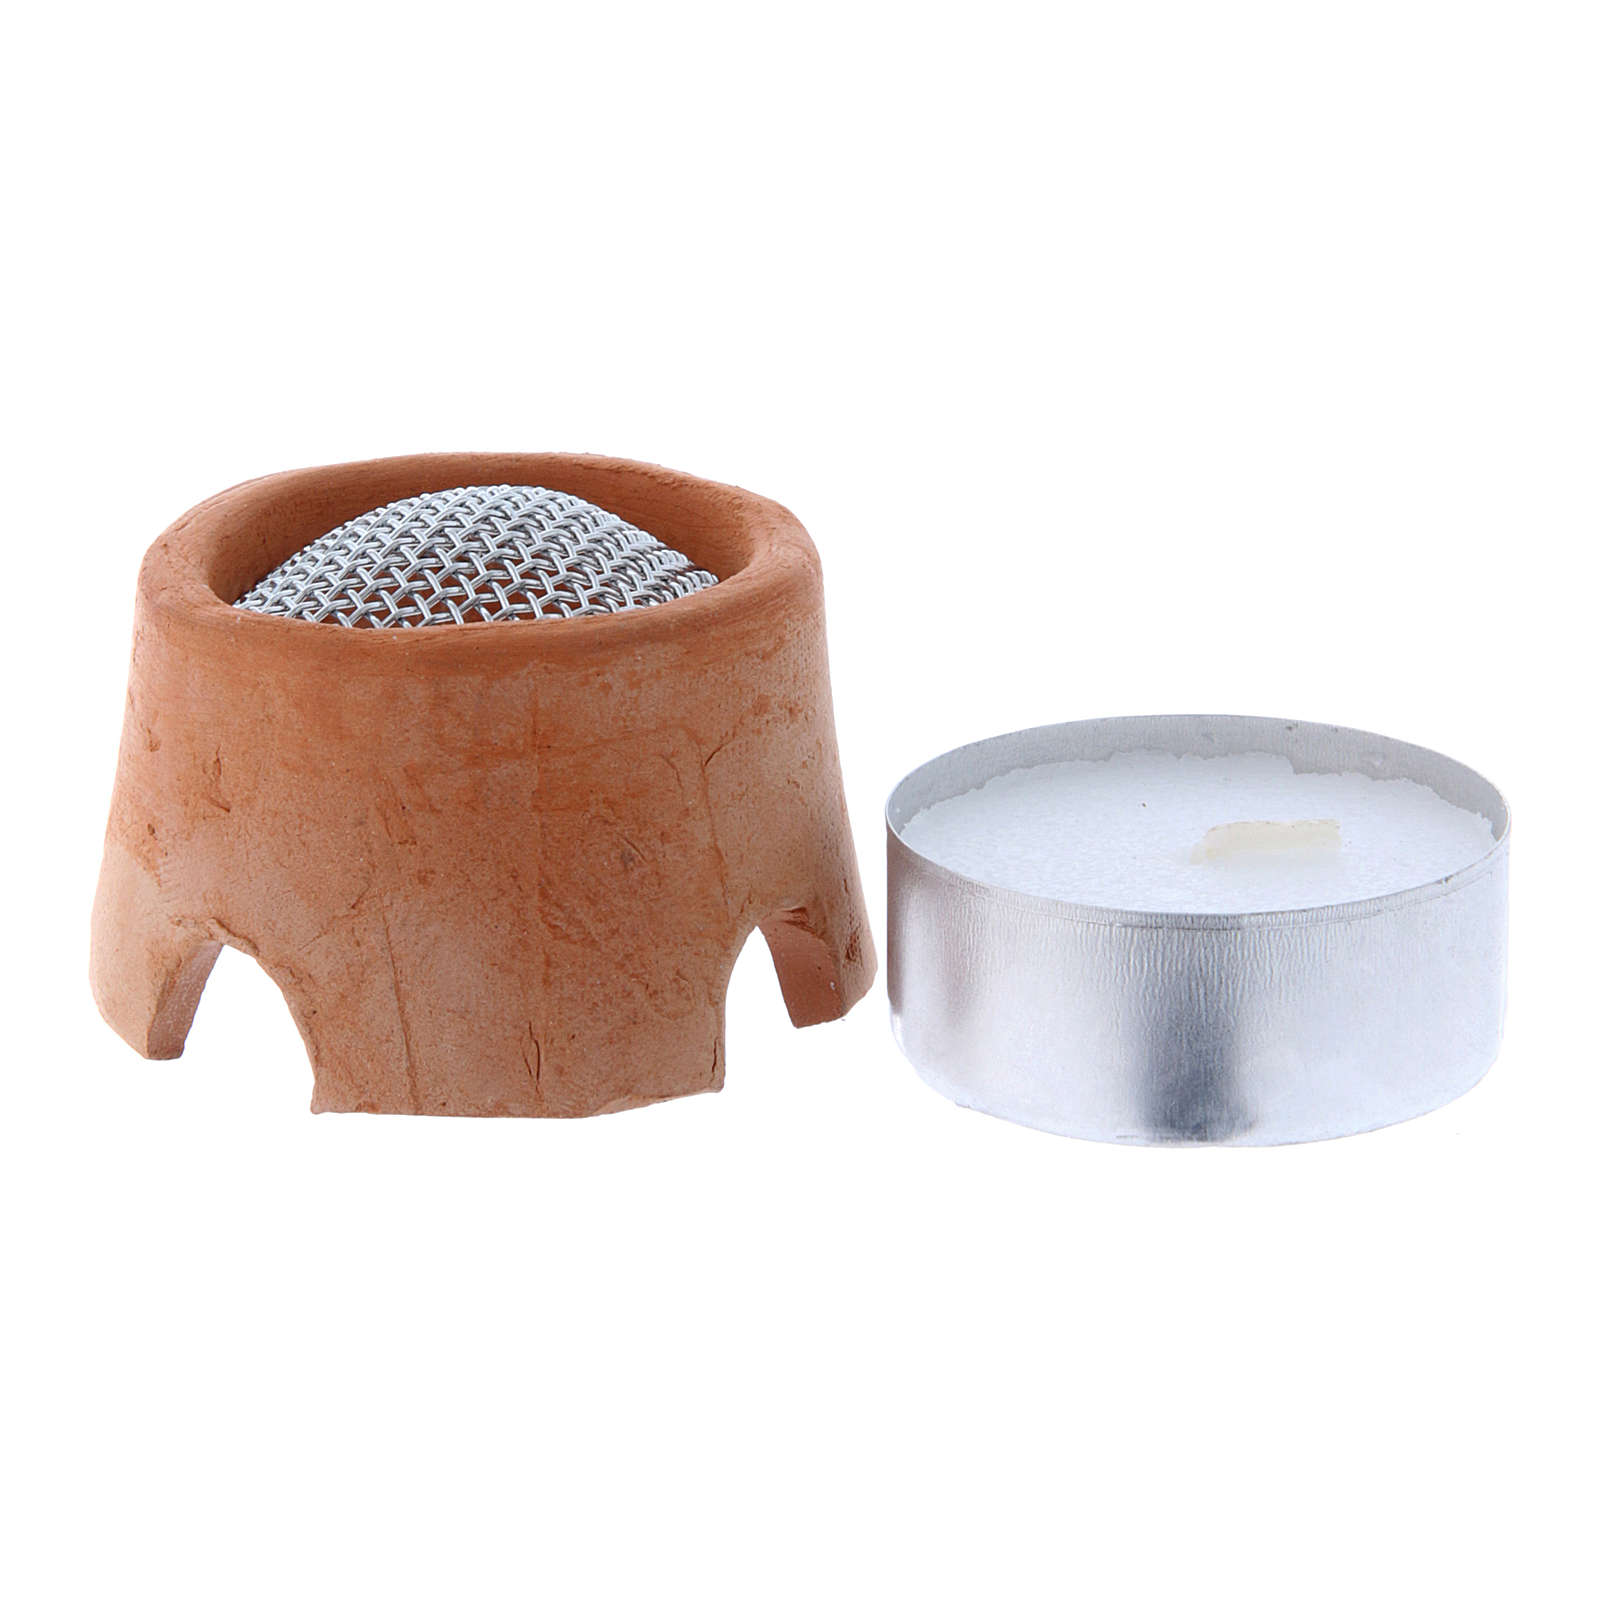 Incense burner with flame for lamp 3